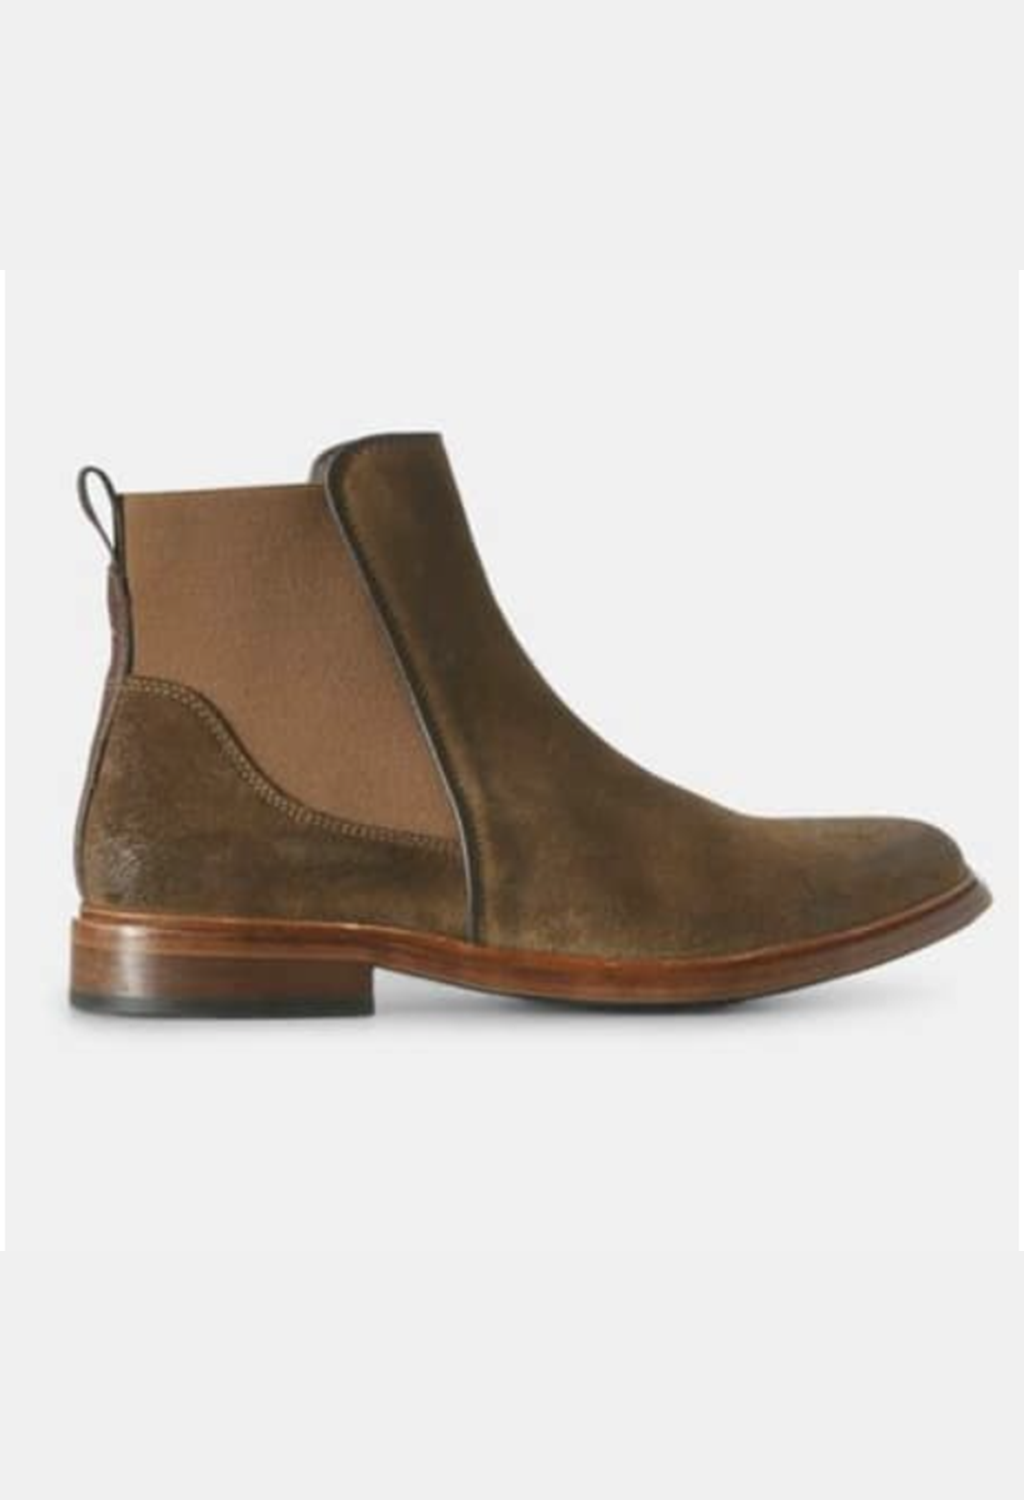 Wyatt Brown Suede Pull-On Boot - RUST & Co.